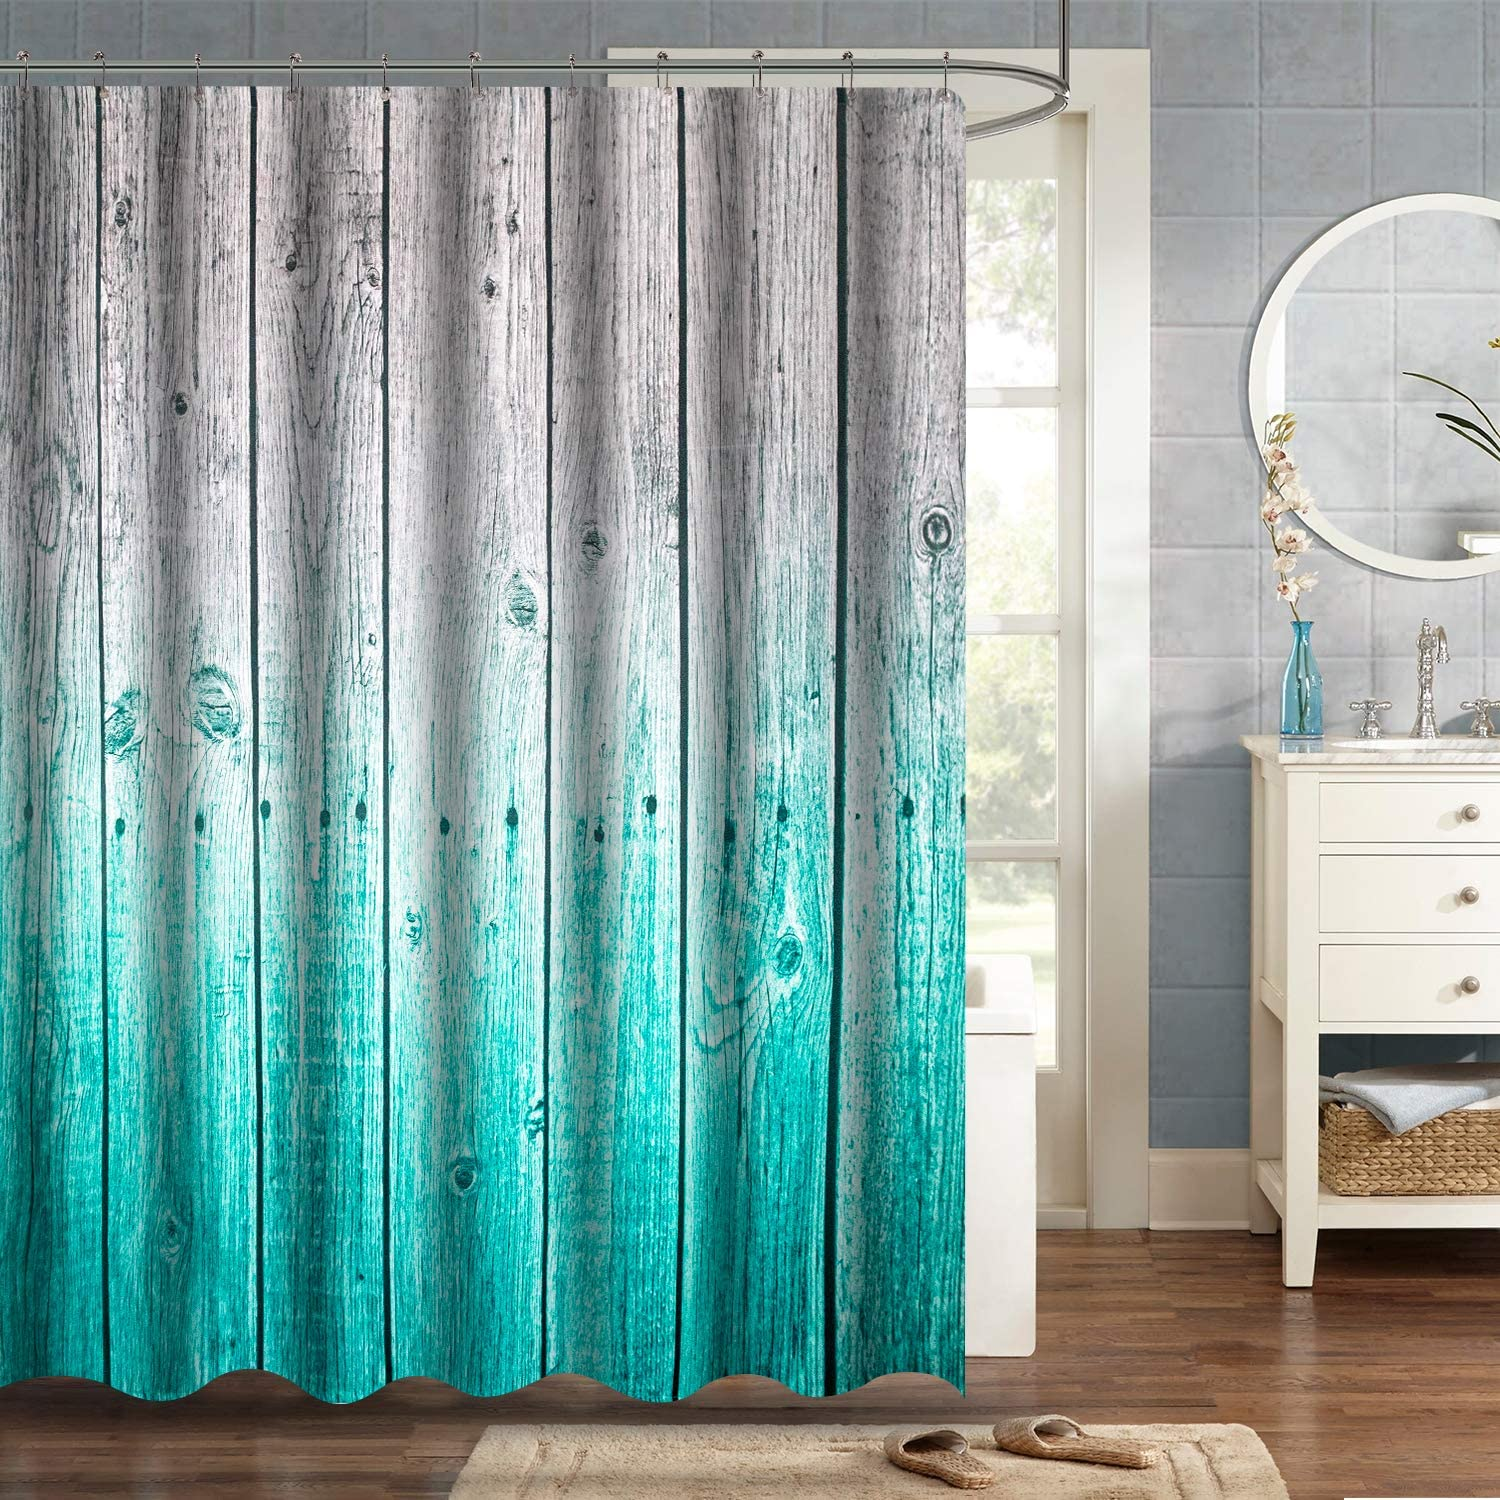 VVA Fabric Shower Curtain with Hooks for Bathroom Waterproof,Machine Washable,Breathable,72x72 inch,Rustic Teal Decor Wood Panels Background with Digital Tones Effect Country House Image Teal Grey